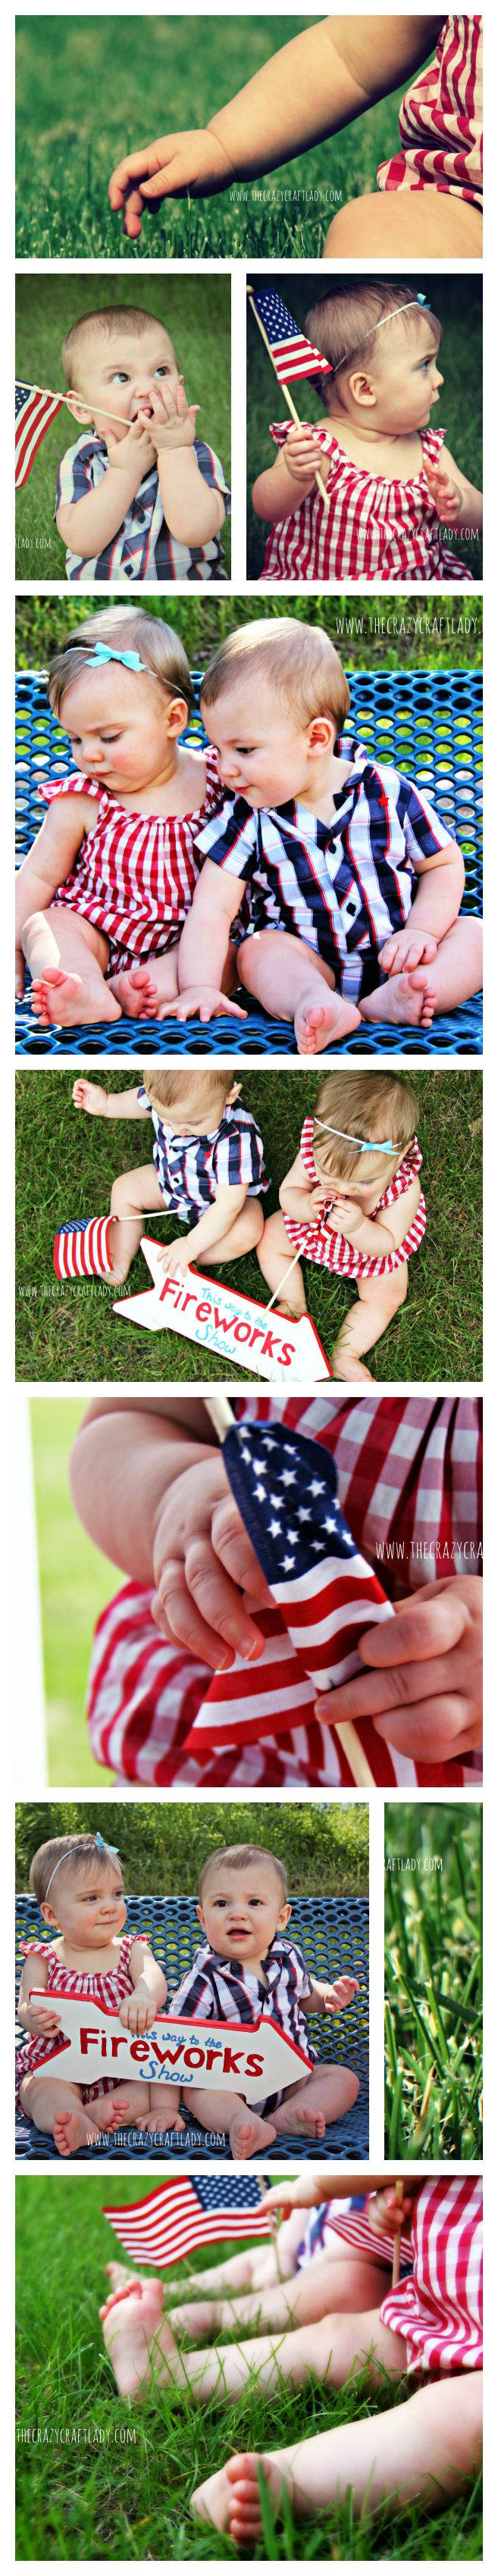 fourth of july crazy outfits